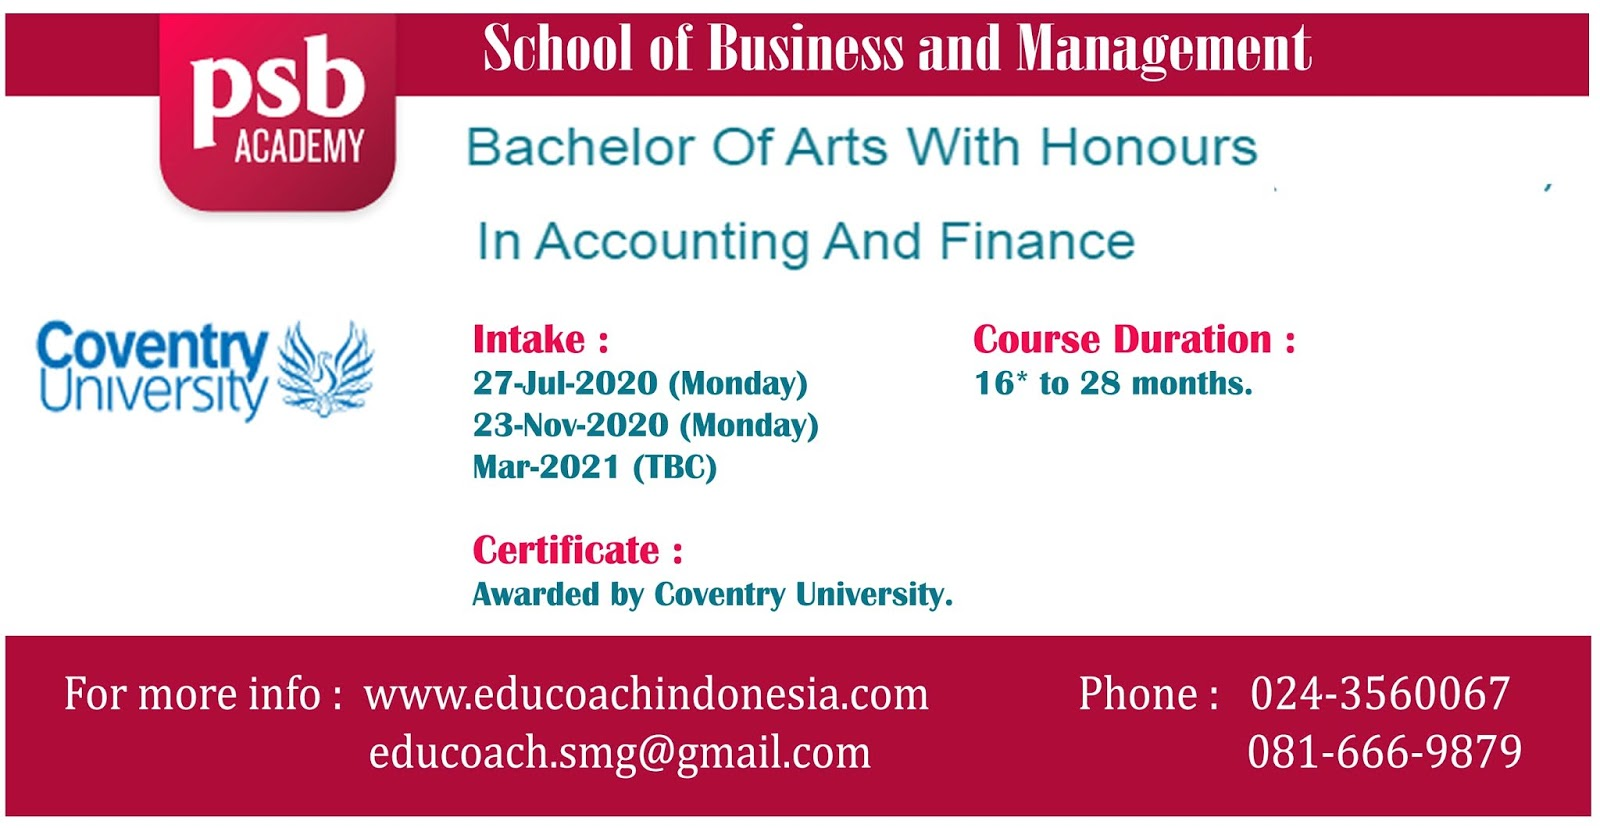 Bachelor Of Arts With Honours In Accounting And Finance | University of Coventry | PSB Academy Singapura